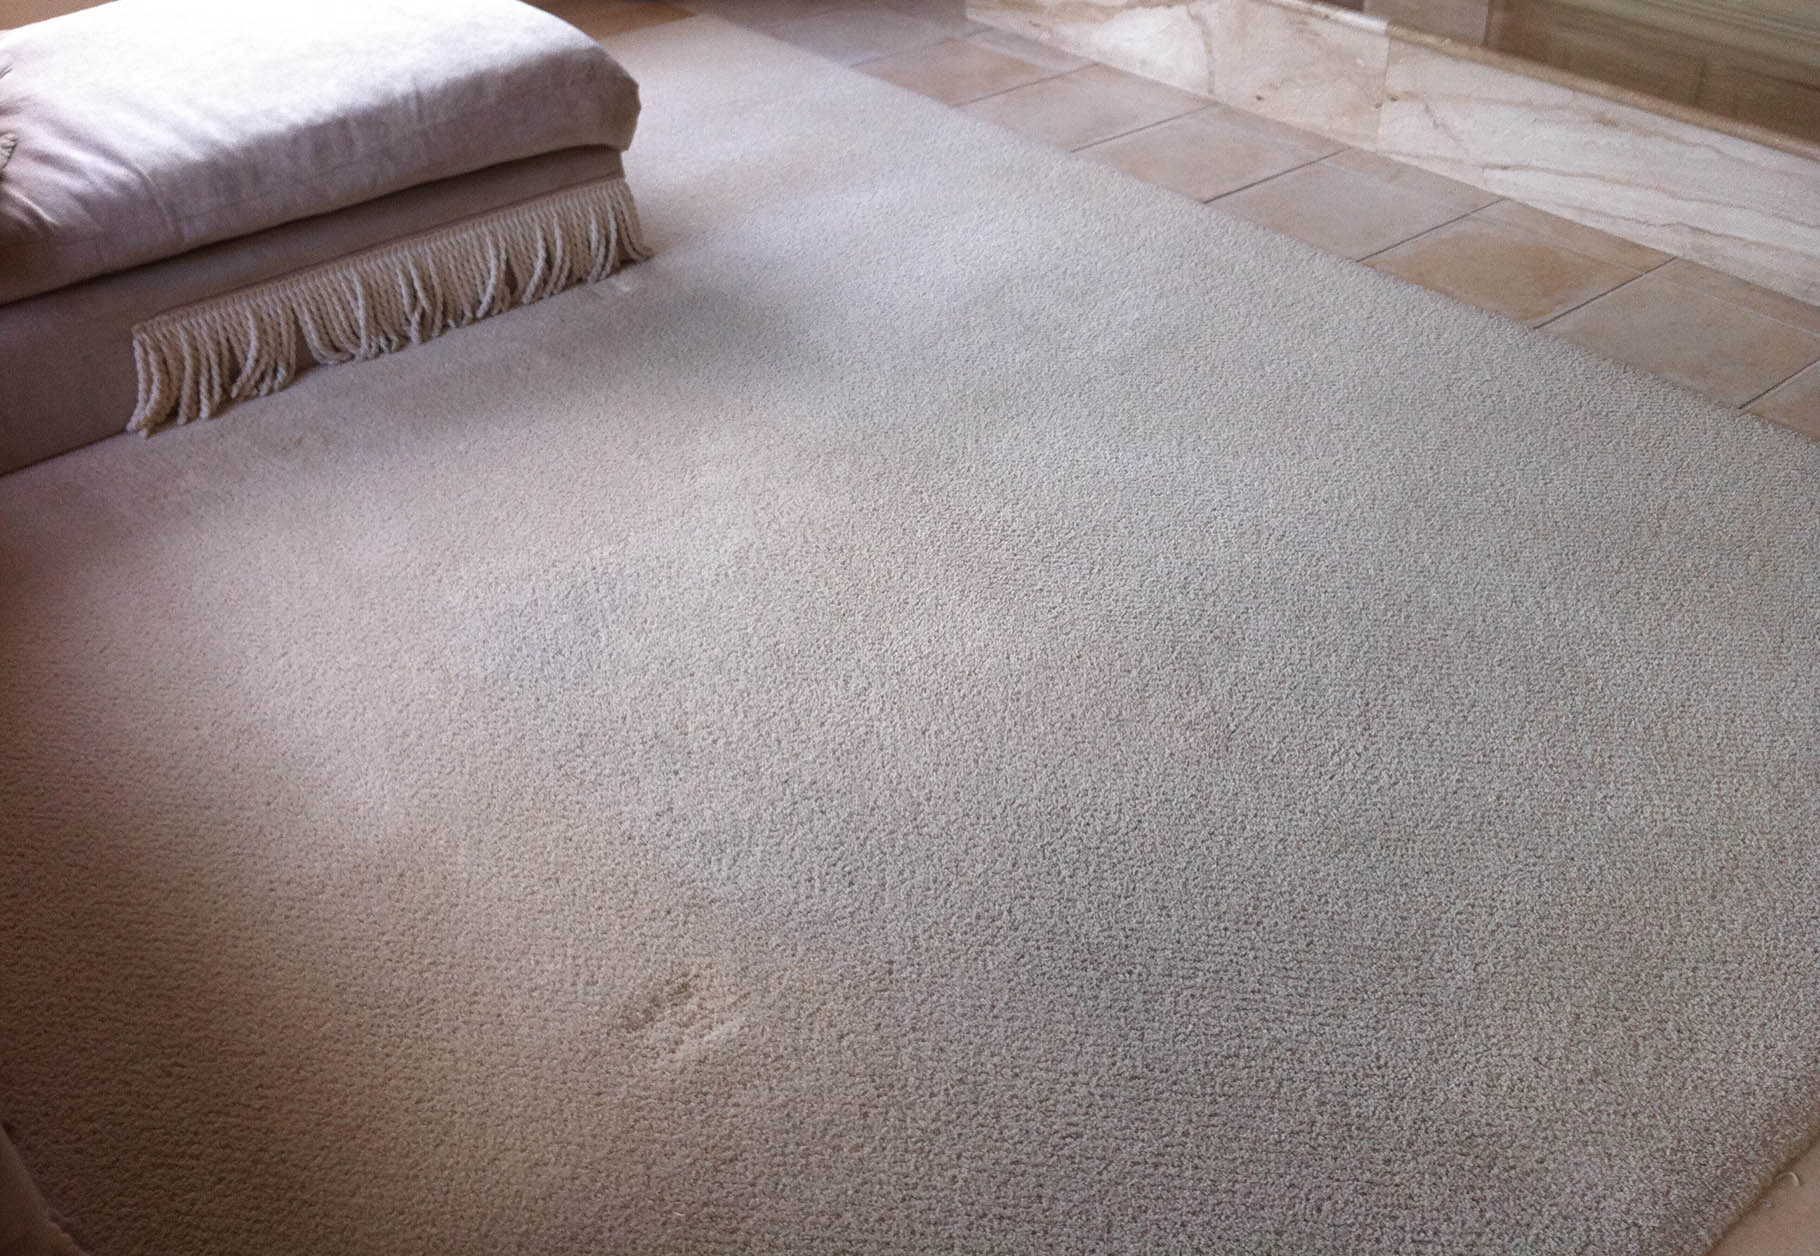 Heaven's Best Carpet Cleaning Orange County - Dry in 1 Hour